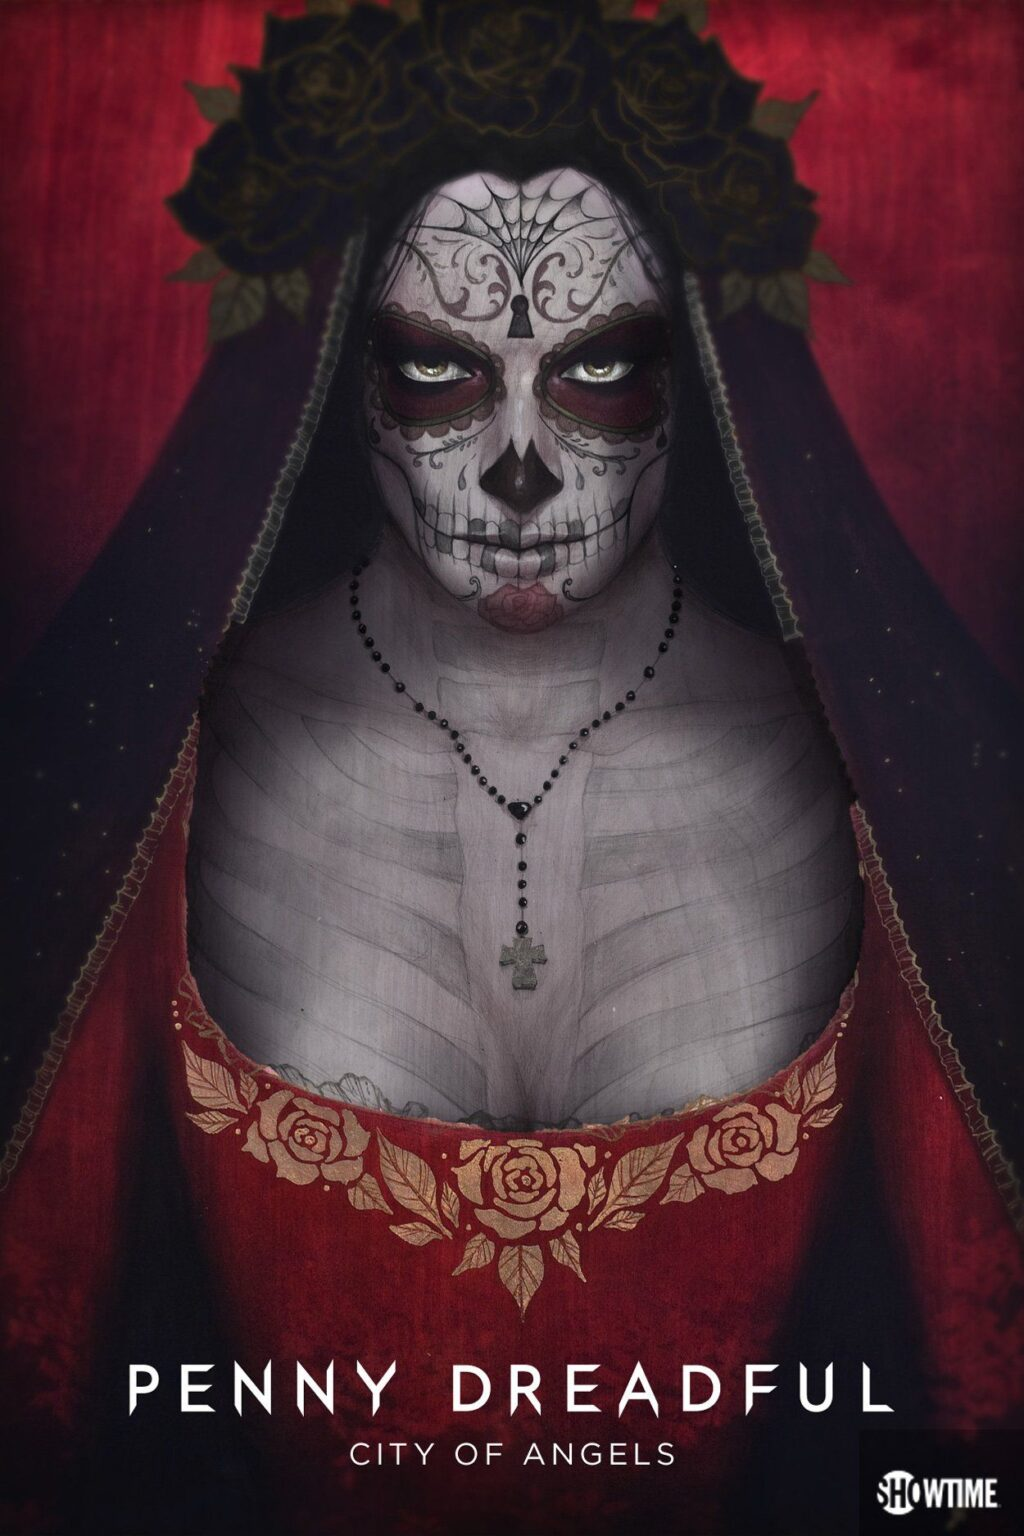 penny dreadful city of angels poster DC 1024x1536 - PENNY DREADFUL: CITY OF ANGELS Trailer Reveals April Premiere